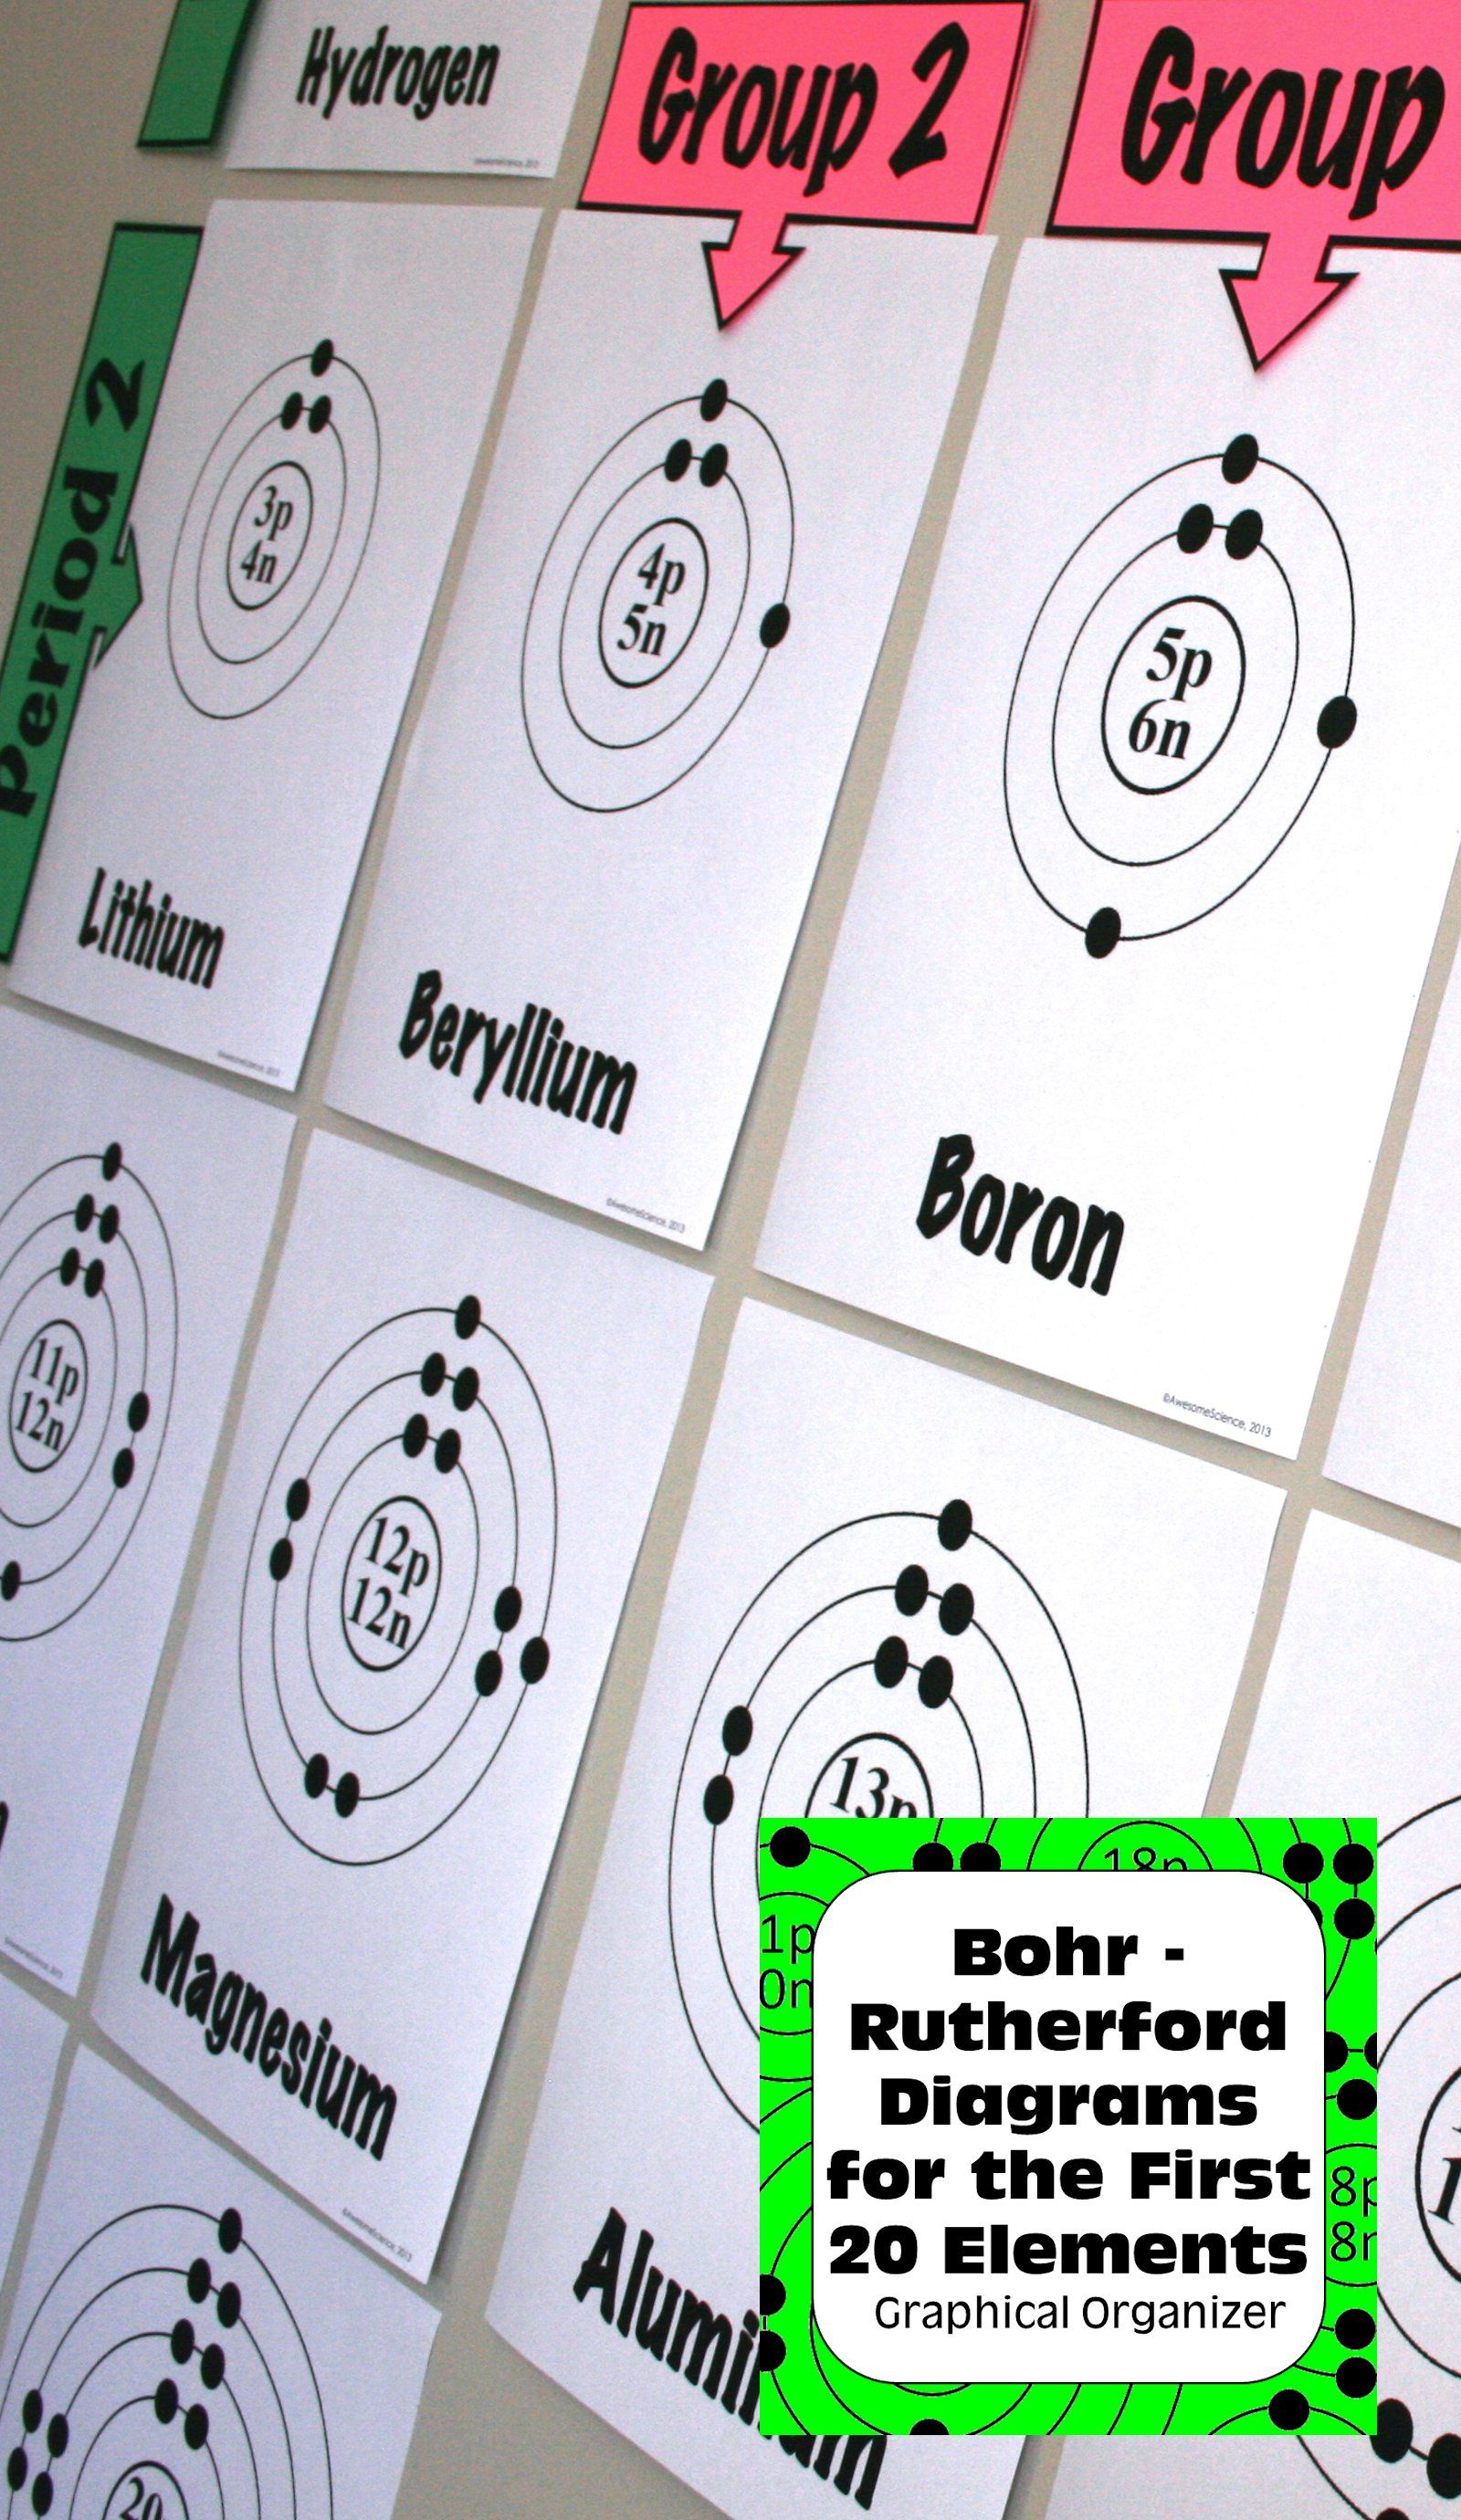 Periodic Elements Diagram Strat 3 Way Switch Wiring Compare And Contrast Bohr Rutherford Diagrams Great Transition To Patterns In The Table Periods Groups Post Your Classroom Walls For